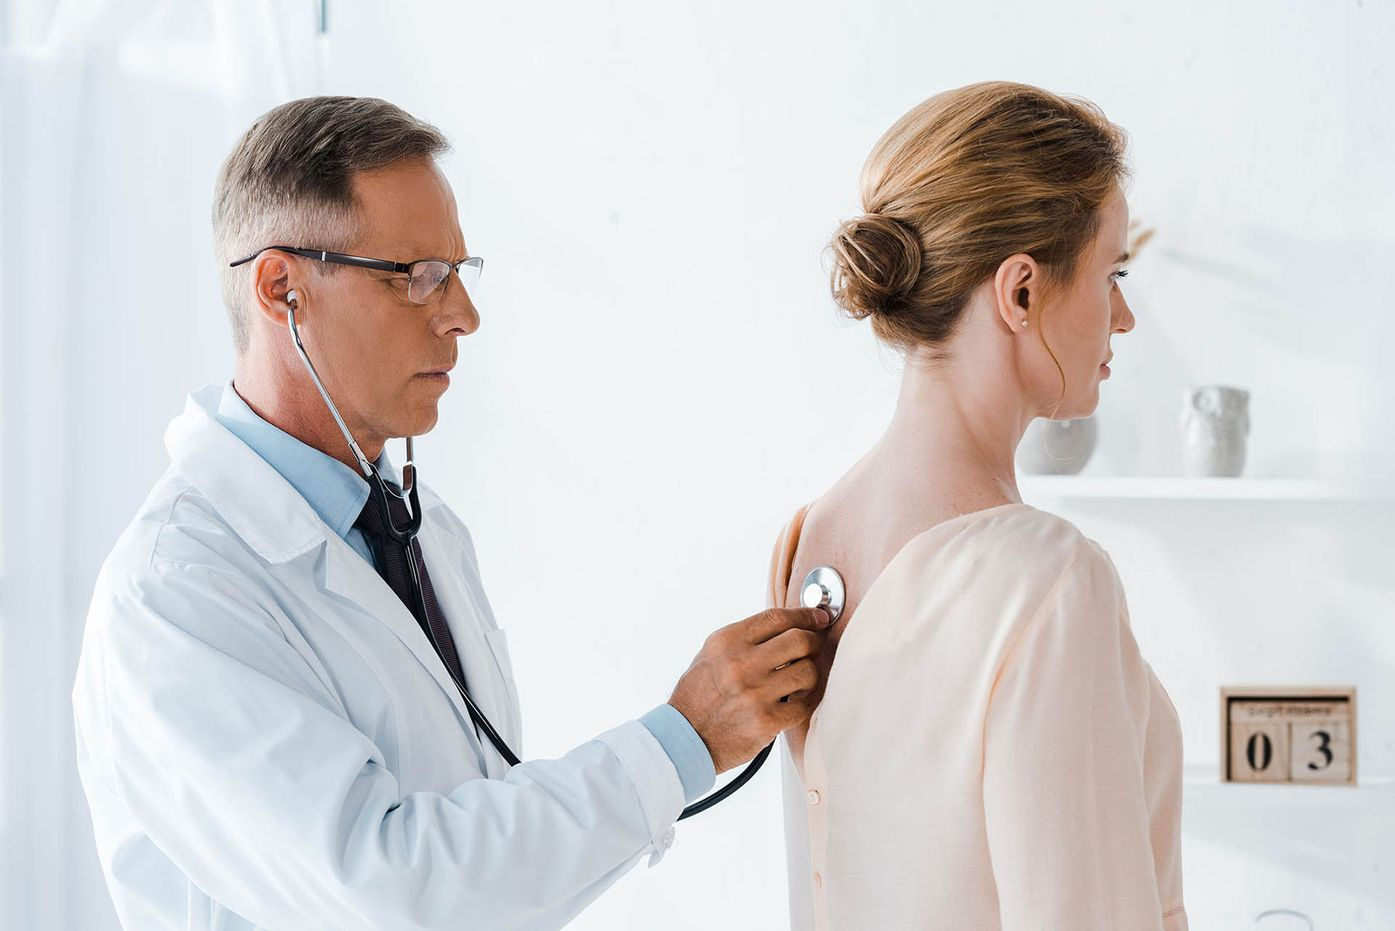 Male doctor using stethoscope on female patient's back.